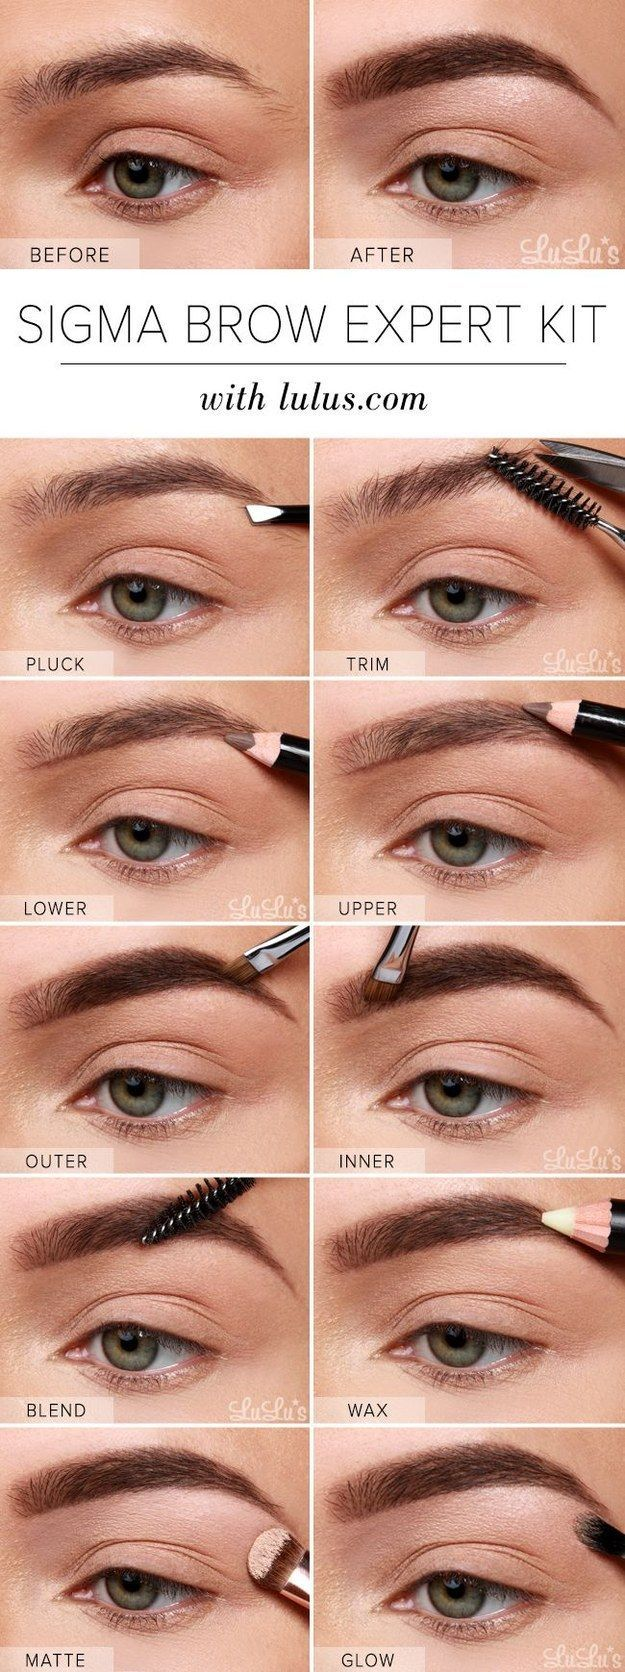 Get on that Cara Delevingne eyebrow grind. | 17 Insanely Beautiful Makeup Ideas For When You're Feeling Your Look